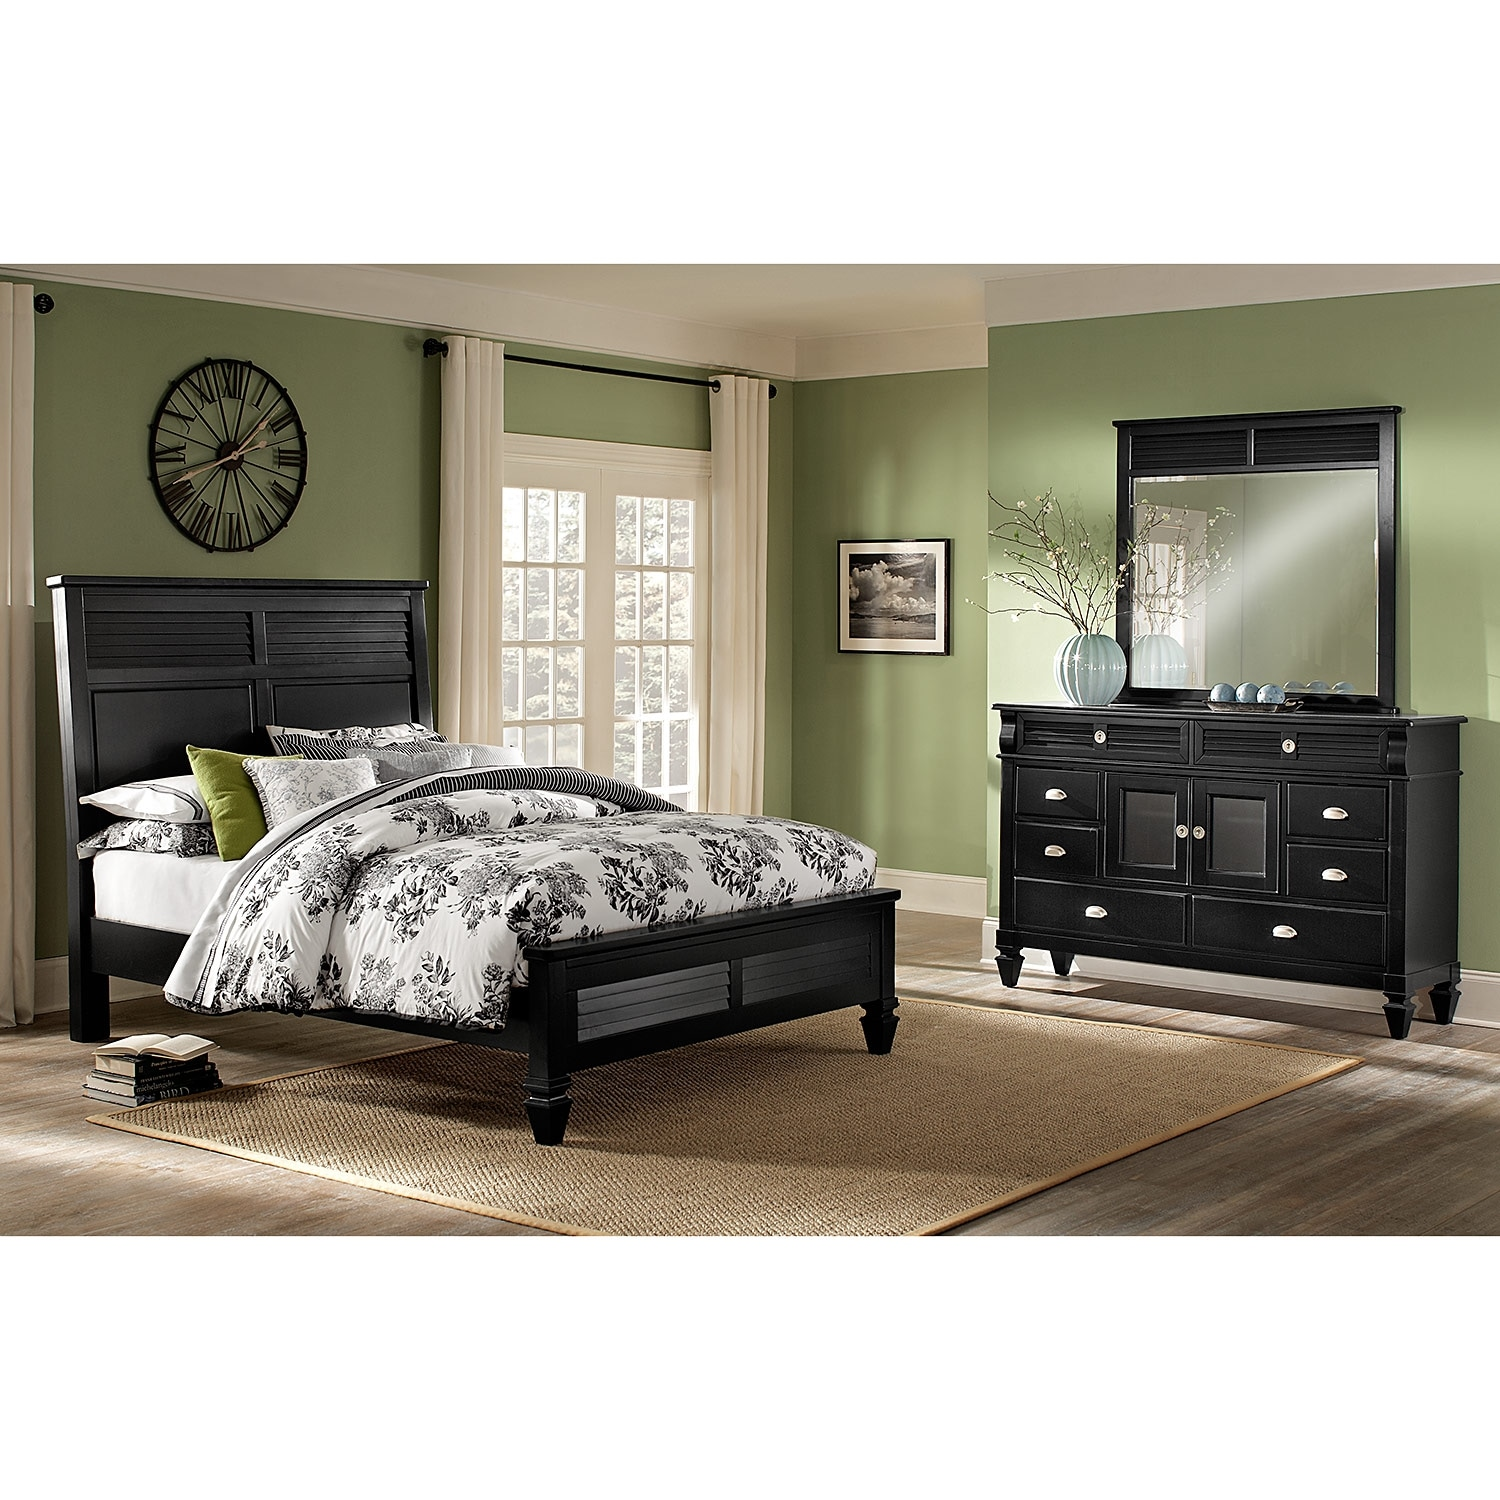 charleston bay black bedroom 5 pc queen bedroom value city furniture. Black Bedroom Furniture Sets. Home Design Ideas